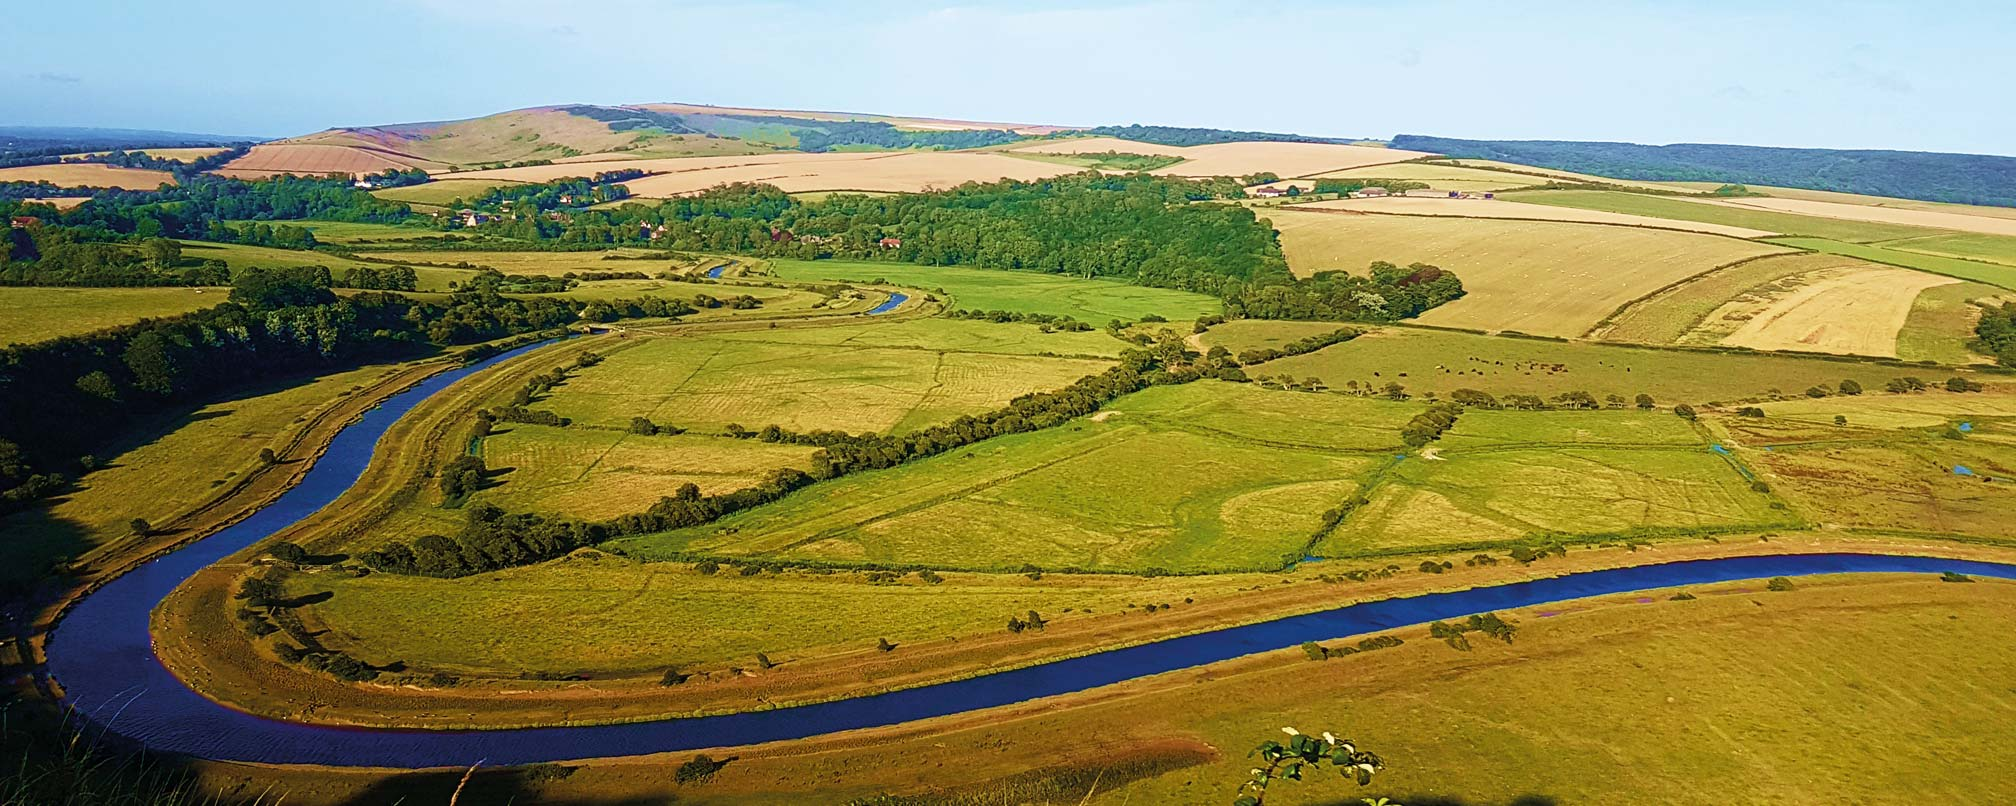 View of the winding Cuckmere River from the air